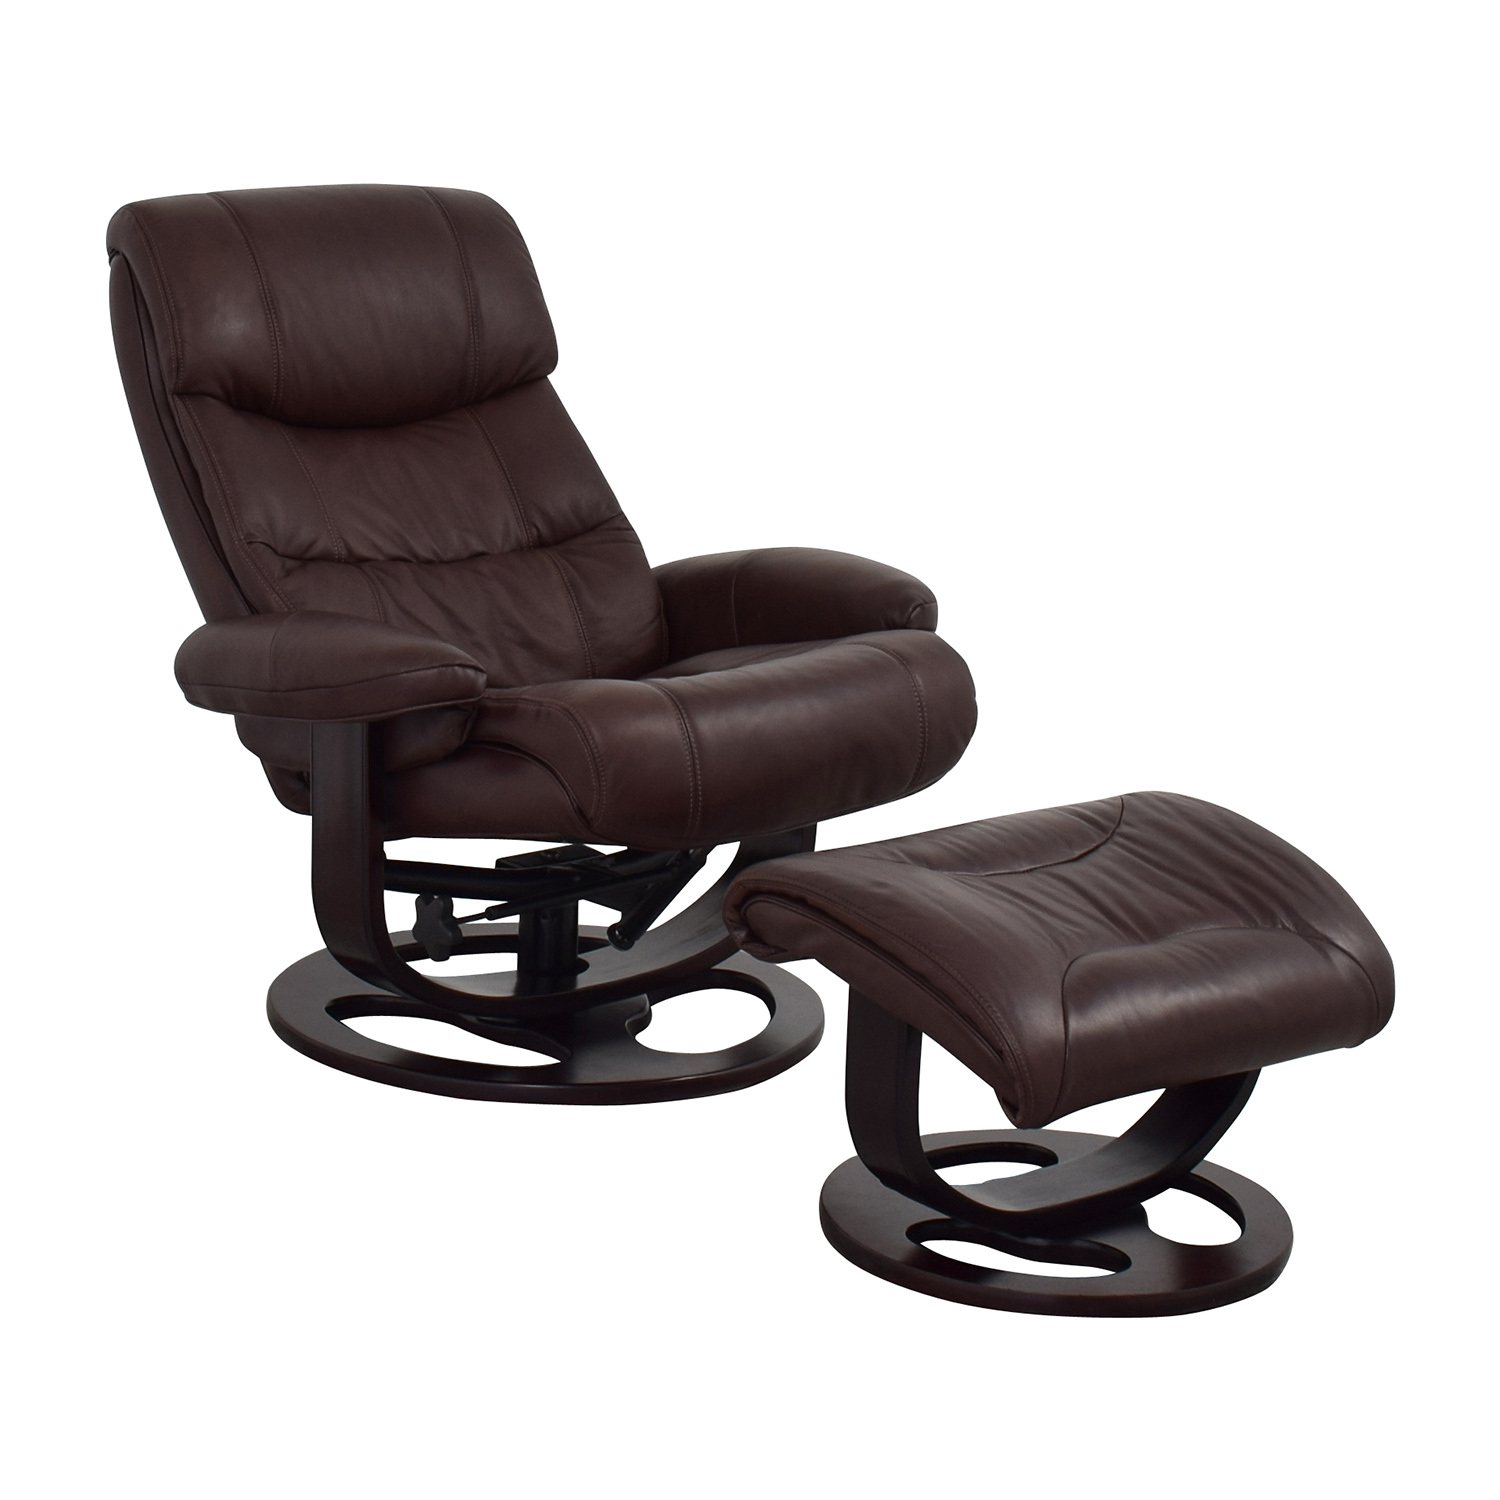 Macys Macys Aby Brown Leather Recliner Chair & Ottoman Recliners